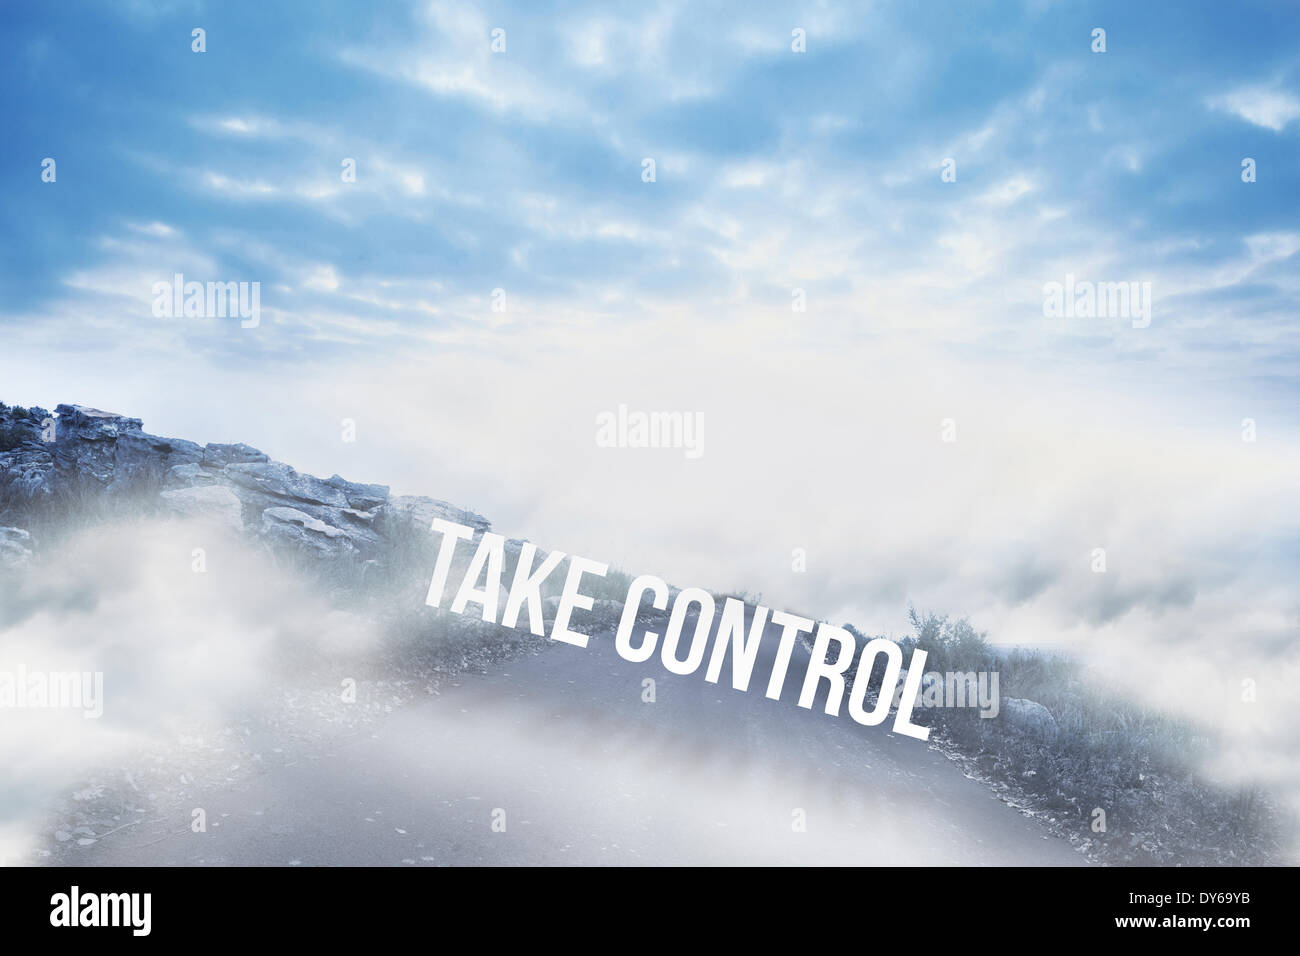 Take control against road leading out to the horizon - Stock Image